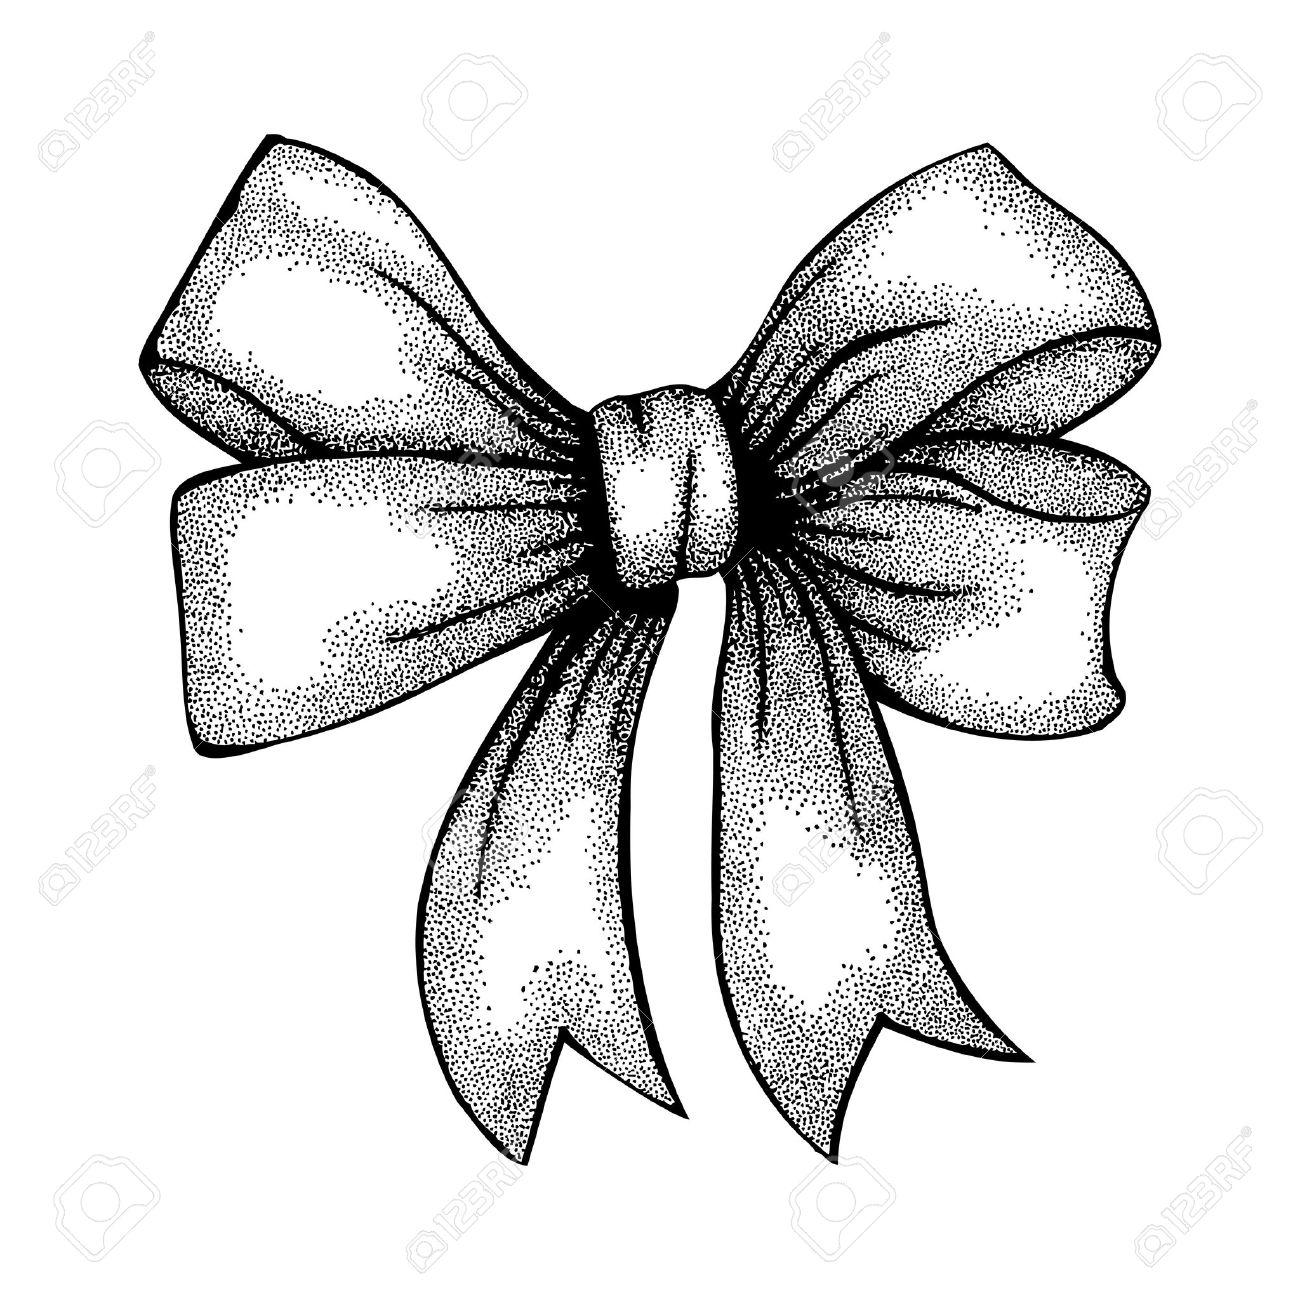 1300x1300 Beautiful Ribbon Tied In A Bow Freehand Drawing In Graphic Style